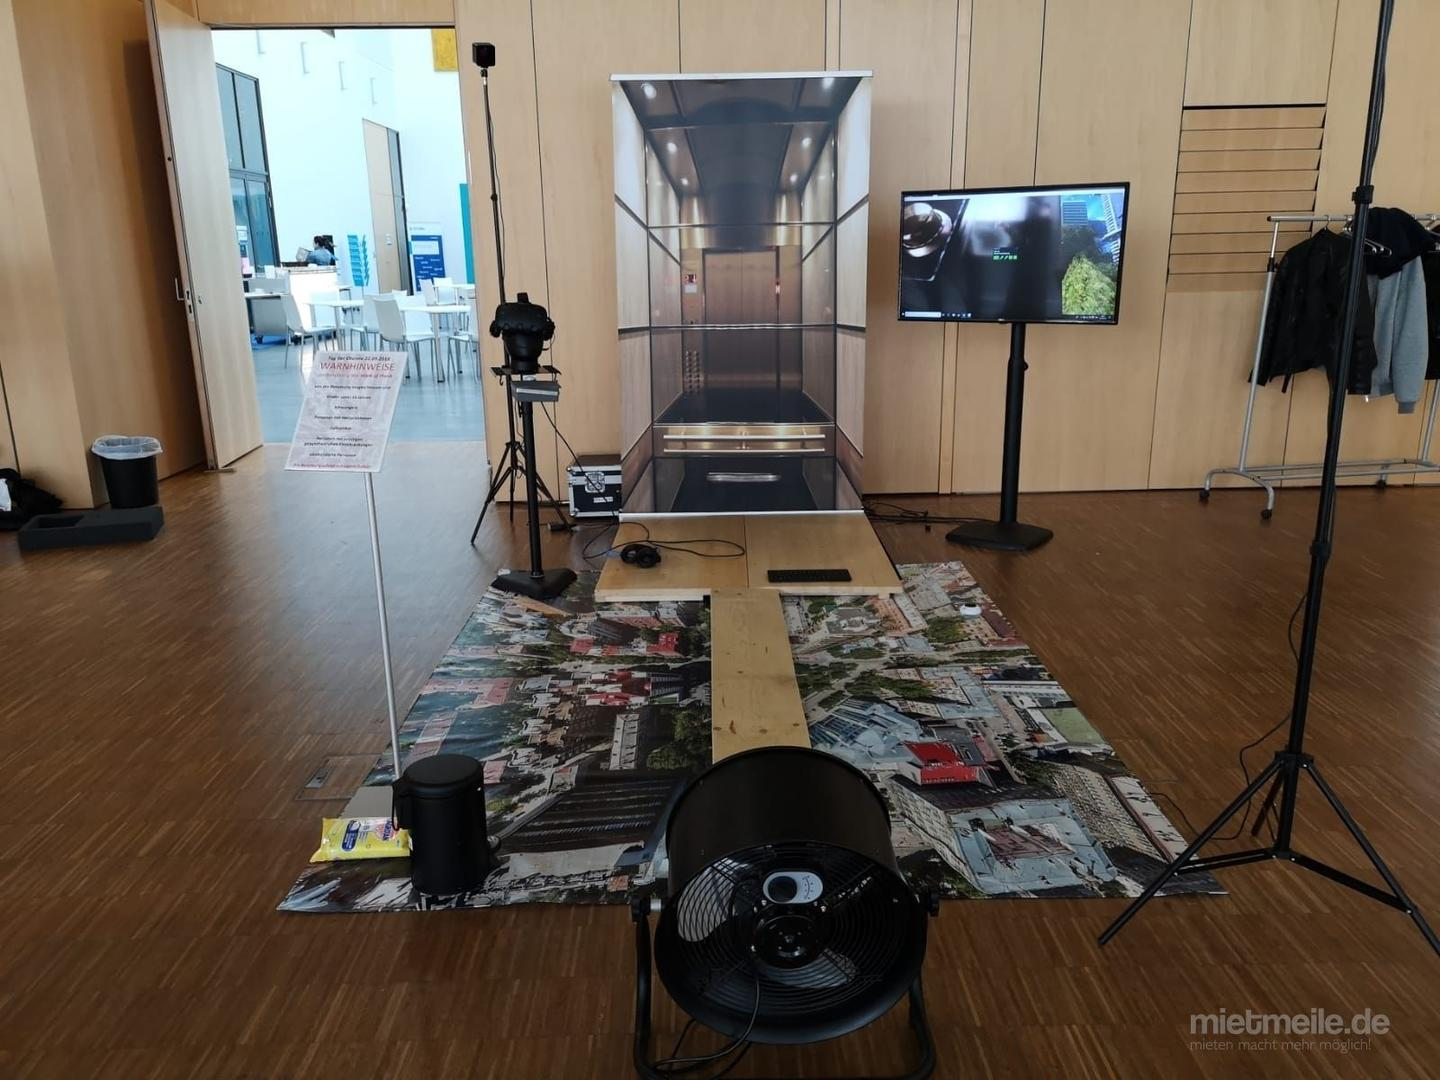 weitere Eventmodule mieten & vermieten - Virtual Reality Walk the Plank / Plank Experience in Neukirchen-Vluyn